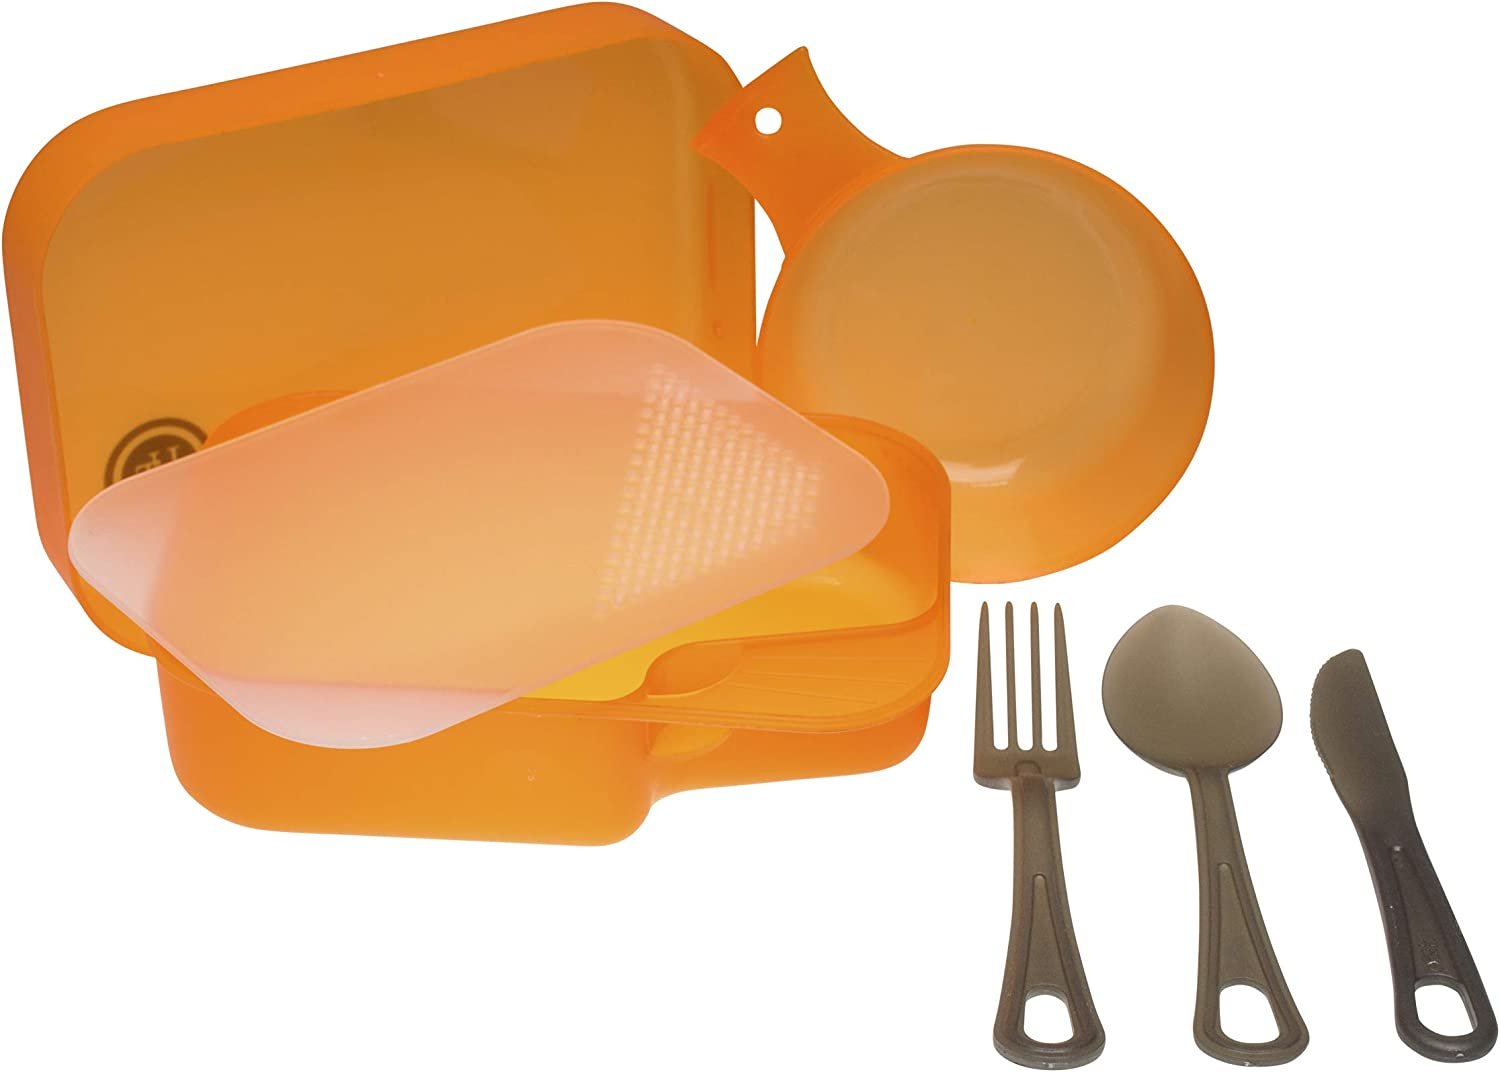 UST PackWare Mess Kit with Self Contained, BPA Free Construction and Eating Utensils for Hiking, Camping, Backpacking, Travel and Outdoor Survival